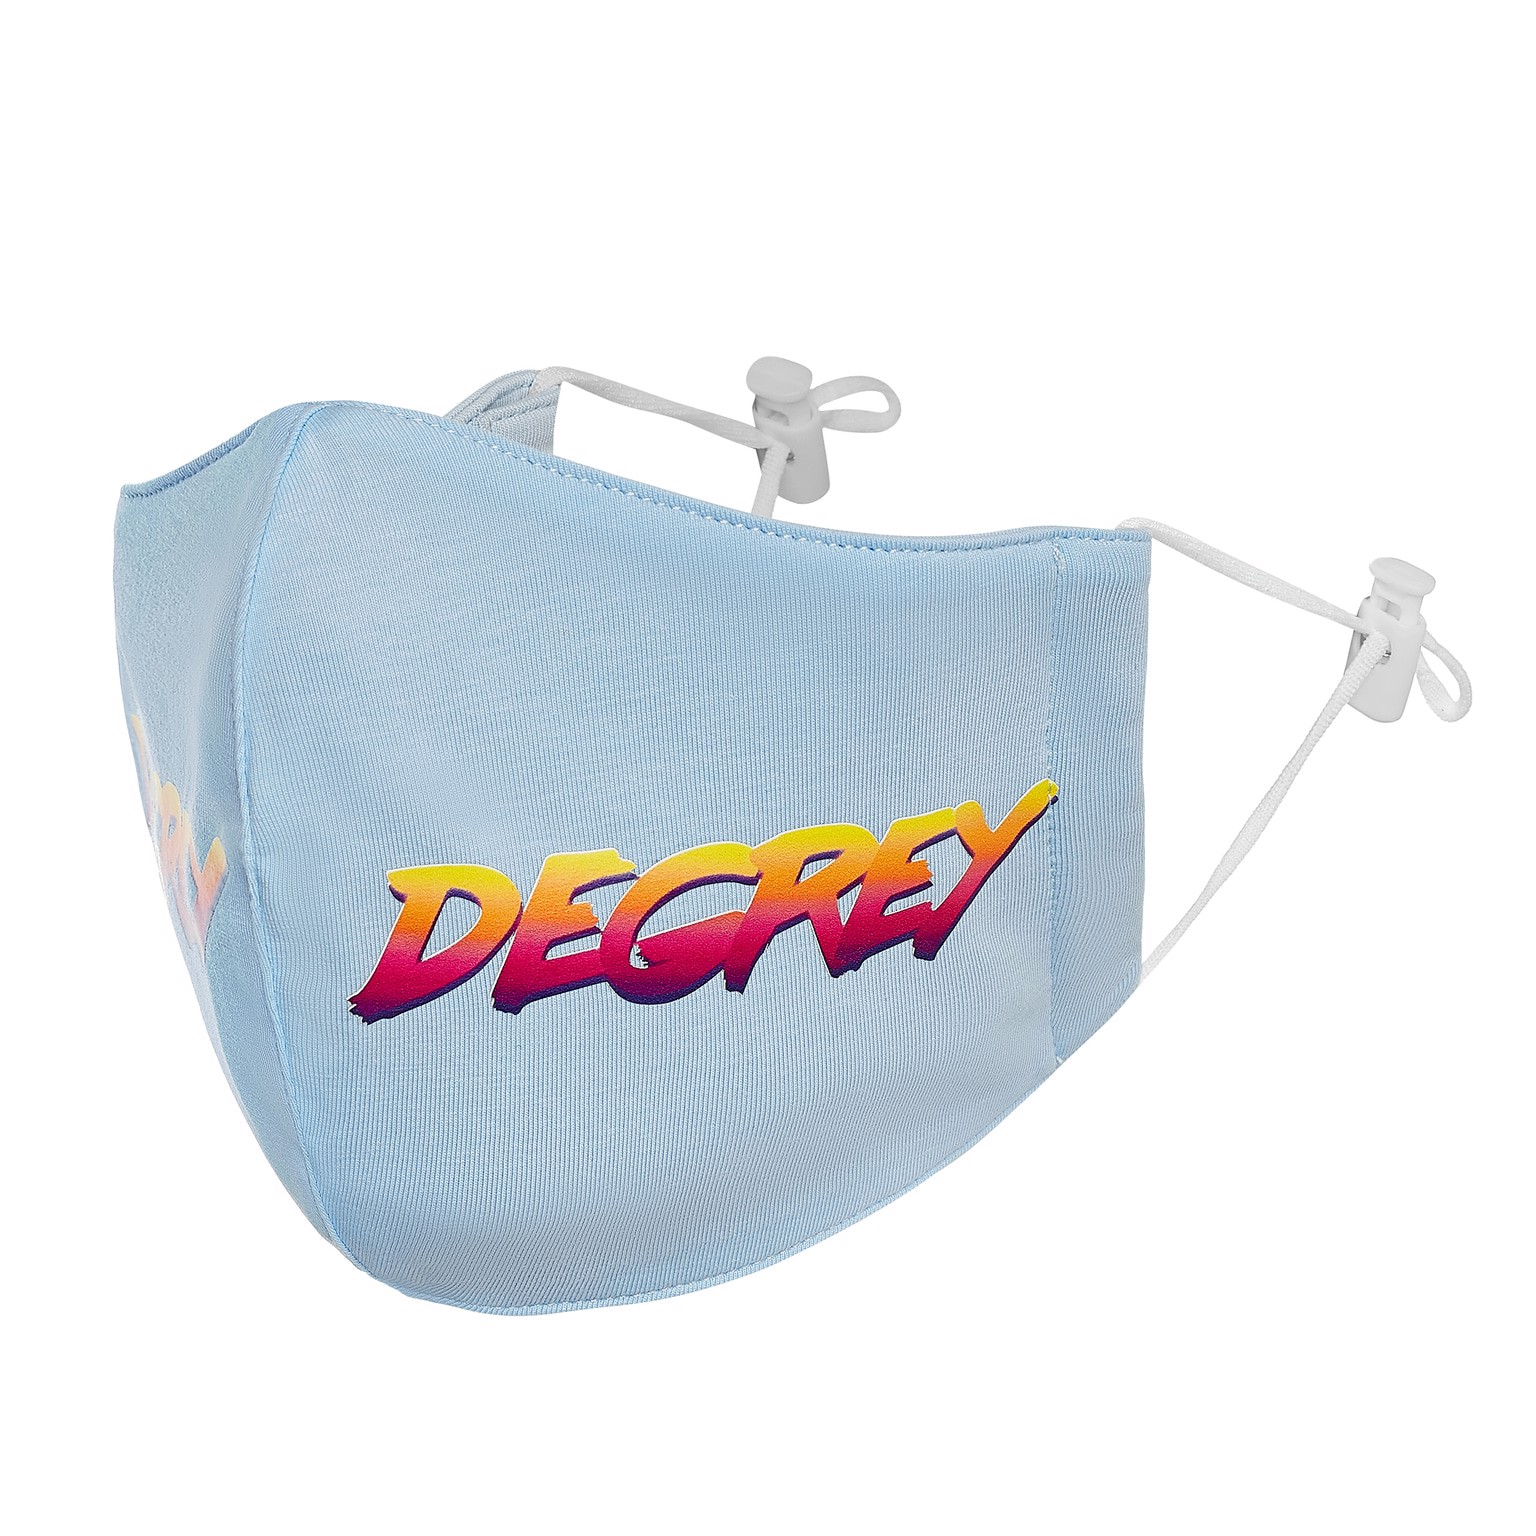 Degrey Summer Mask - DSM Blue